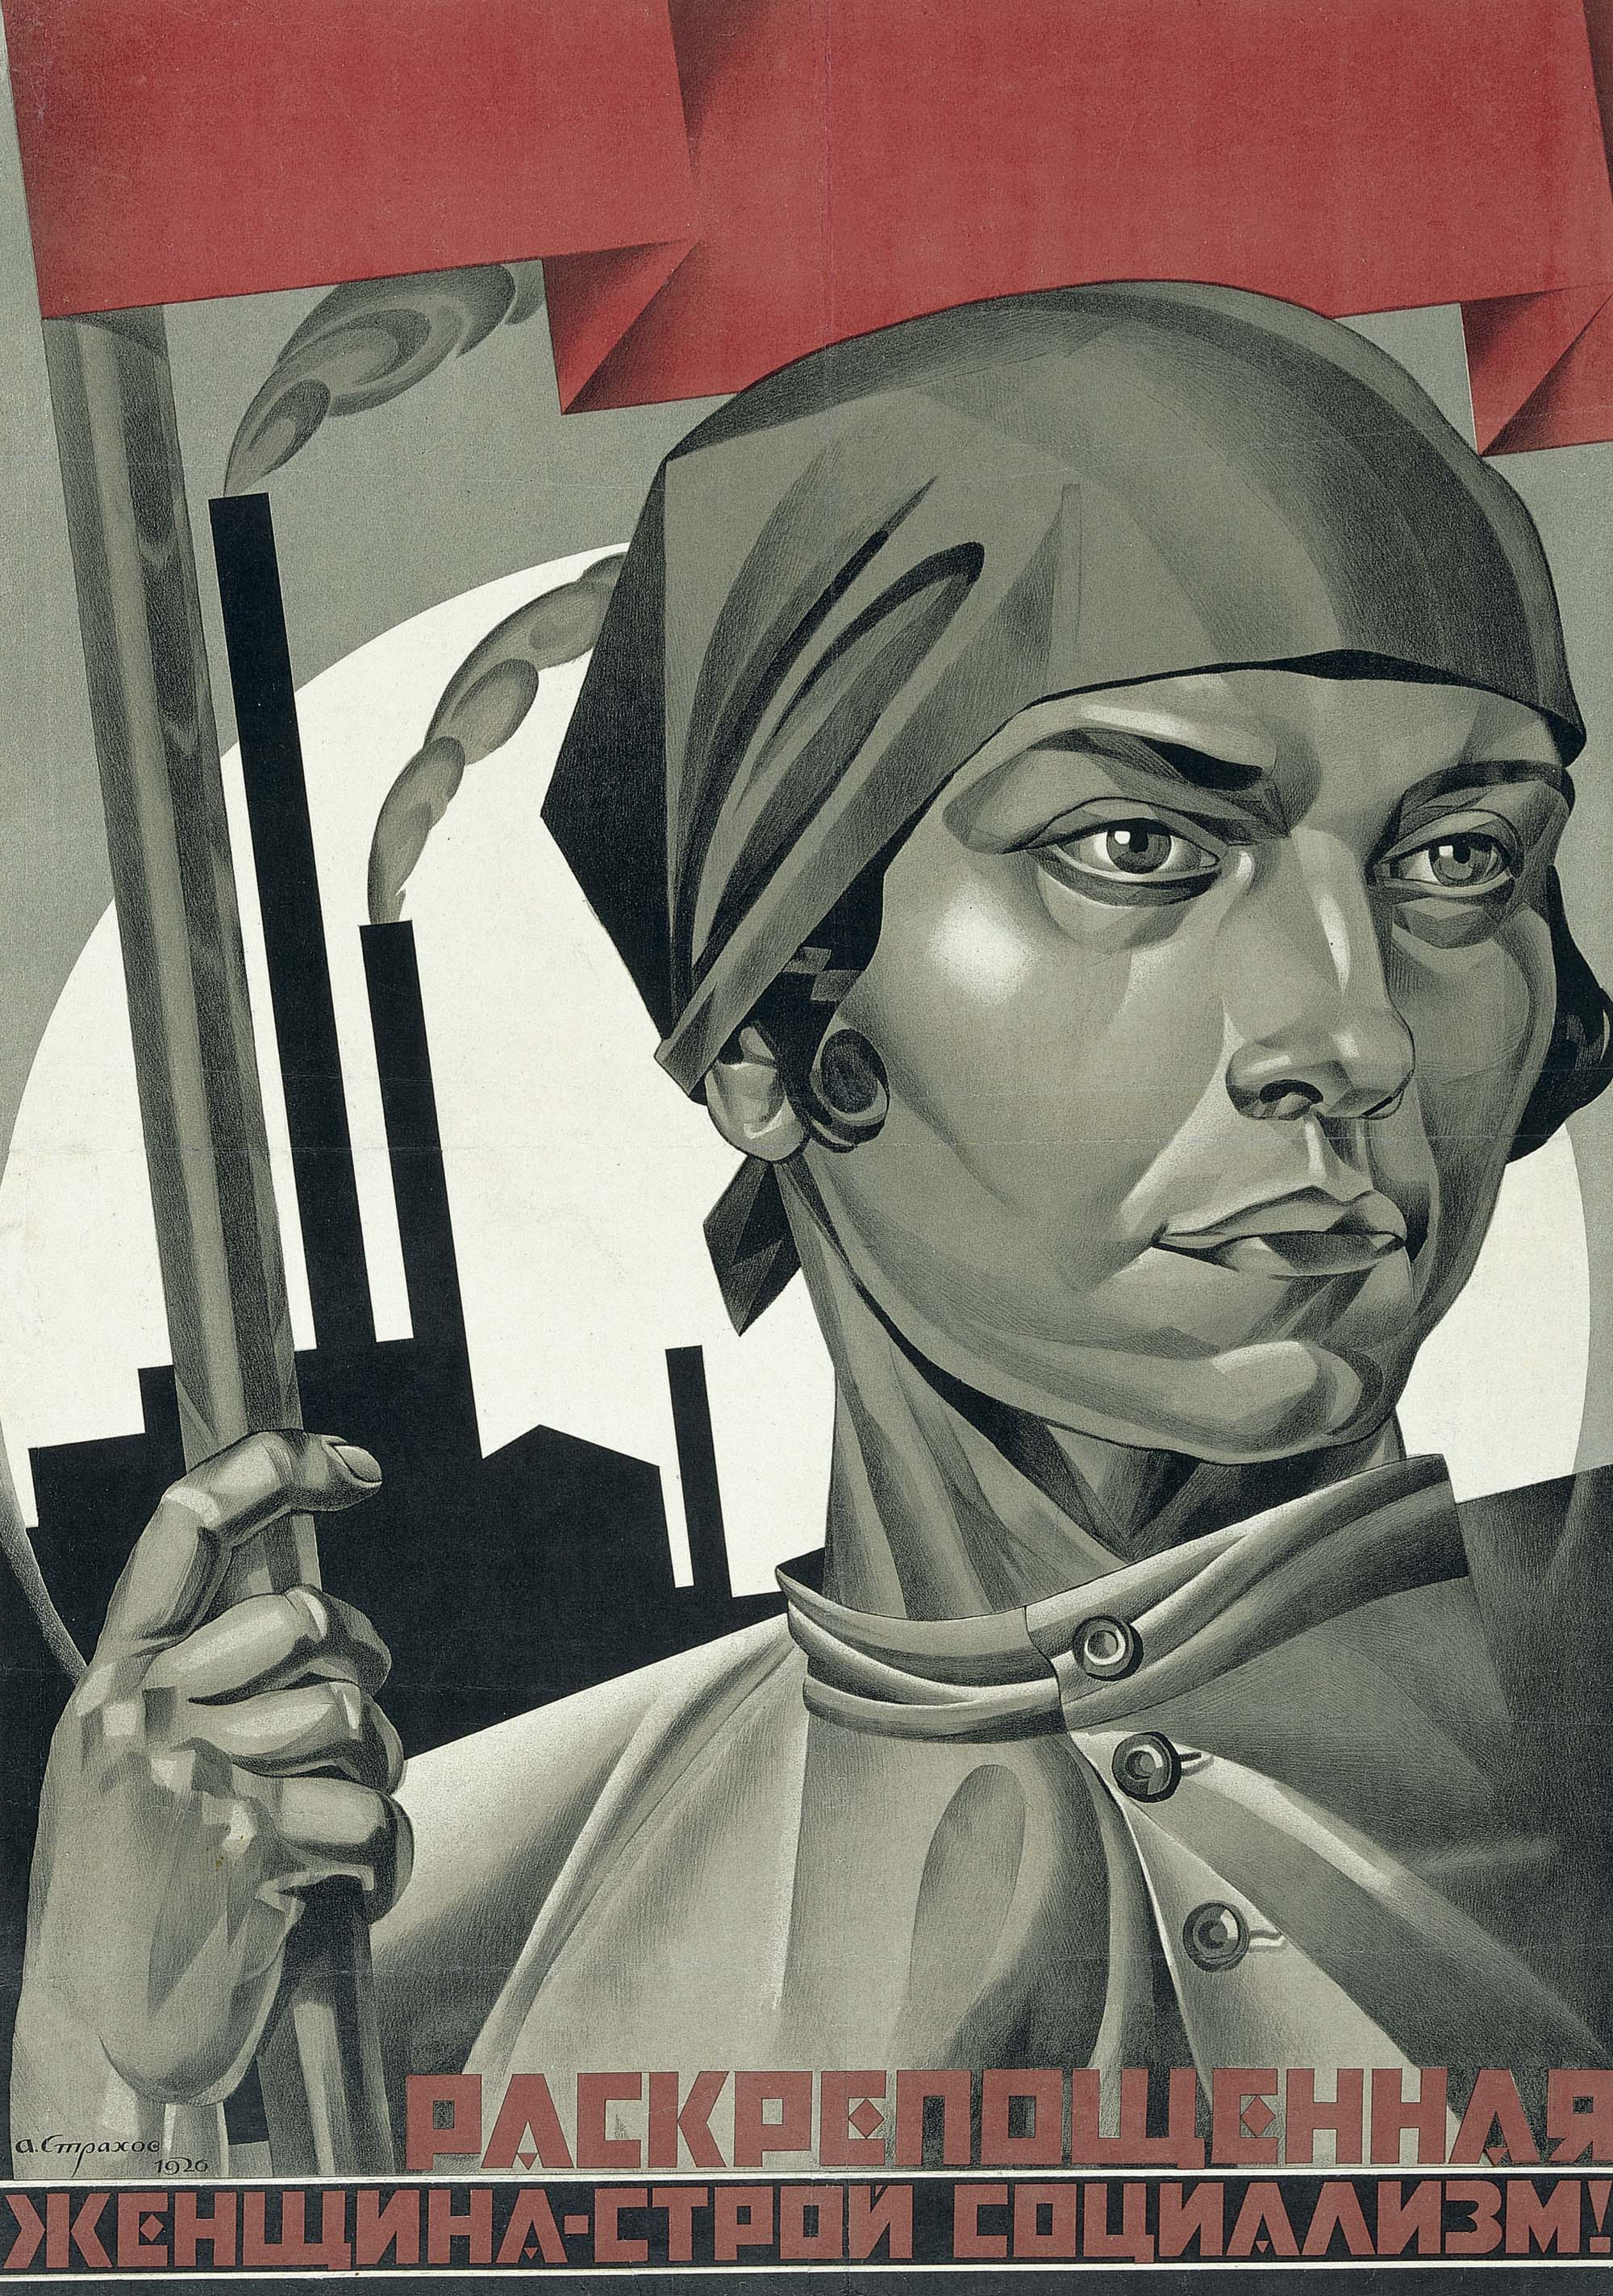 a tylised poster featuring an illustation of a woman holding a flagpole in front of a billowing factory